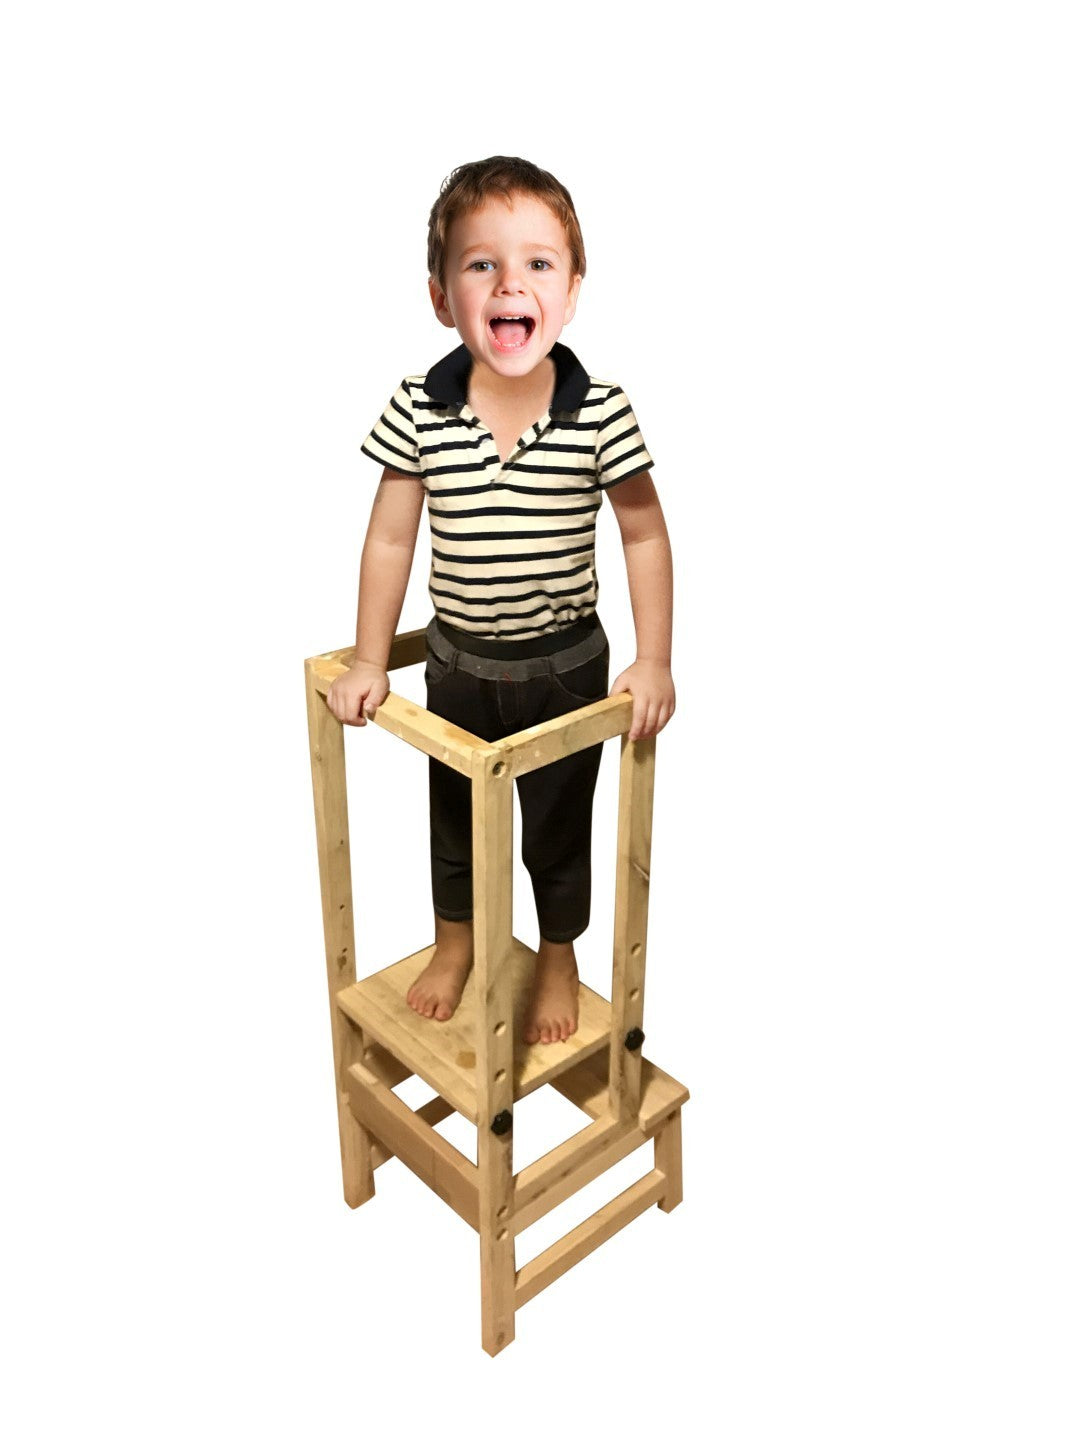 Kids DIY Learning stool with Fence